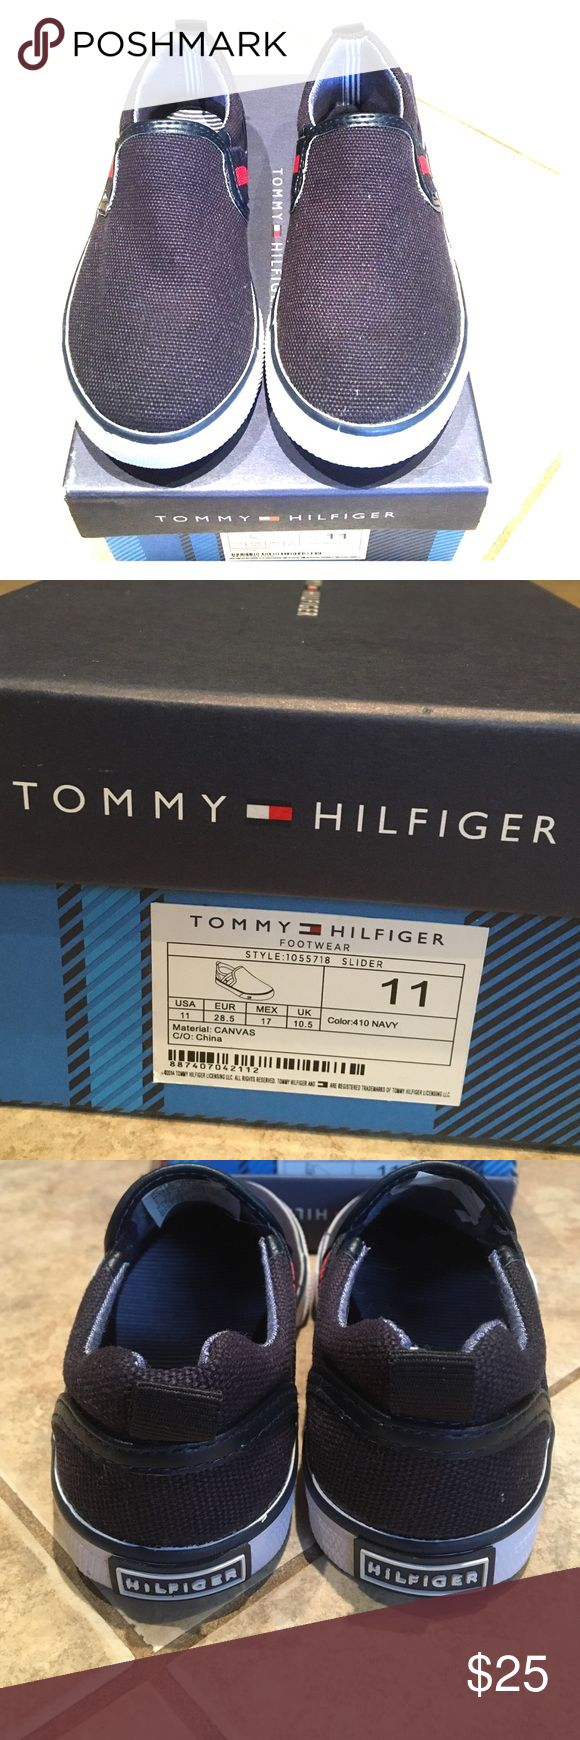 Brand New In Box!!! Tommy Hilfiger Canvas Slider Brand New In Box Little Boy's Tommy Hilfiger Dennis Slider Canvas Sneaker, Size 11, Navy Blue. Never worn. Box is ripped a little on one corner, but closes fine. Smoke/pet free household. Tommy Hilfiger Shoes Sneakers